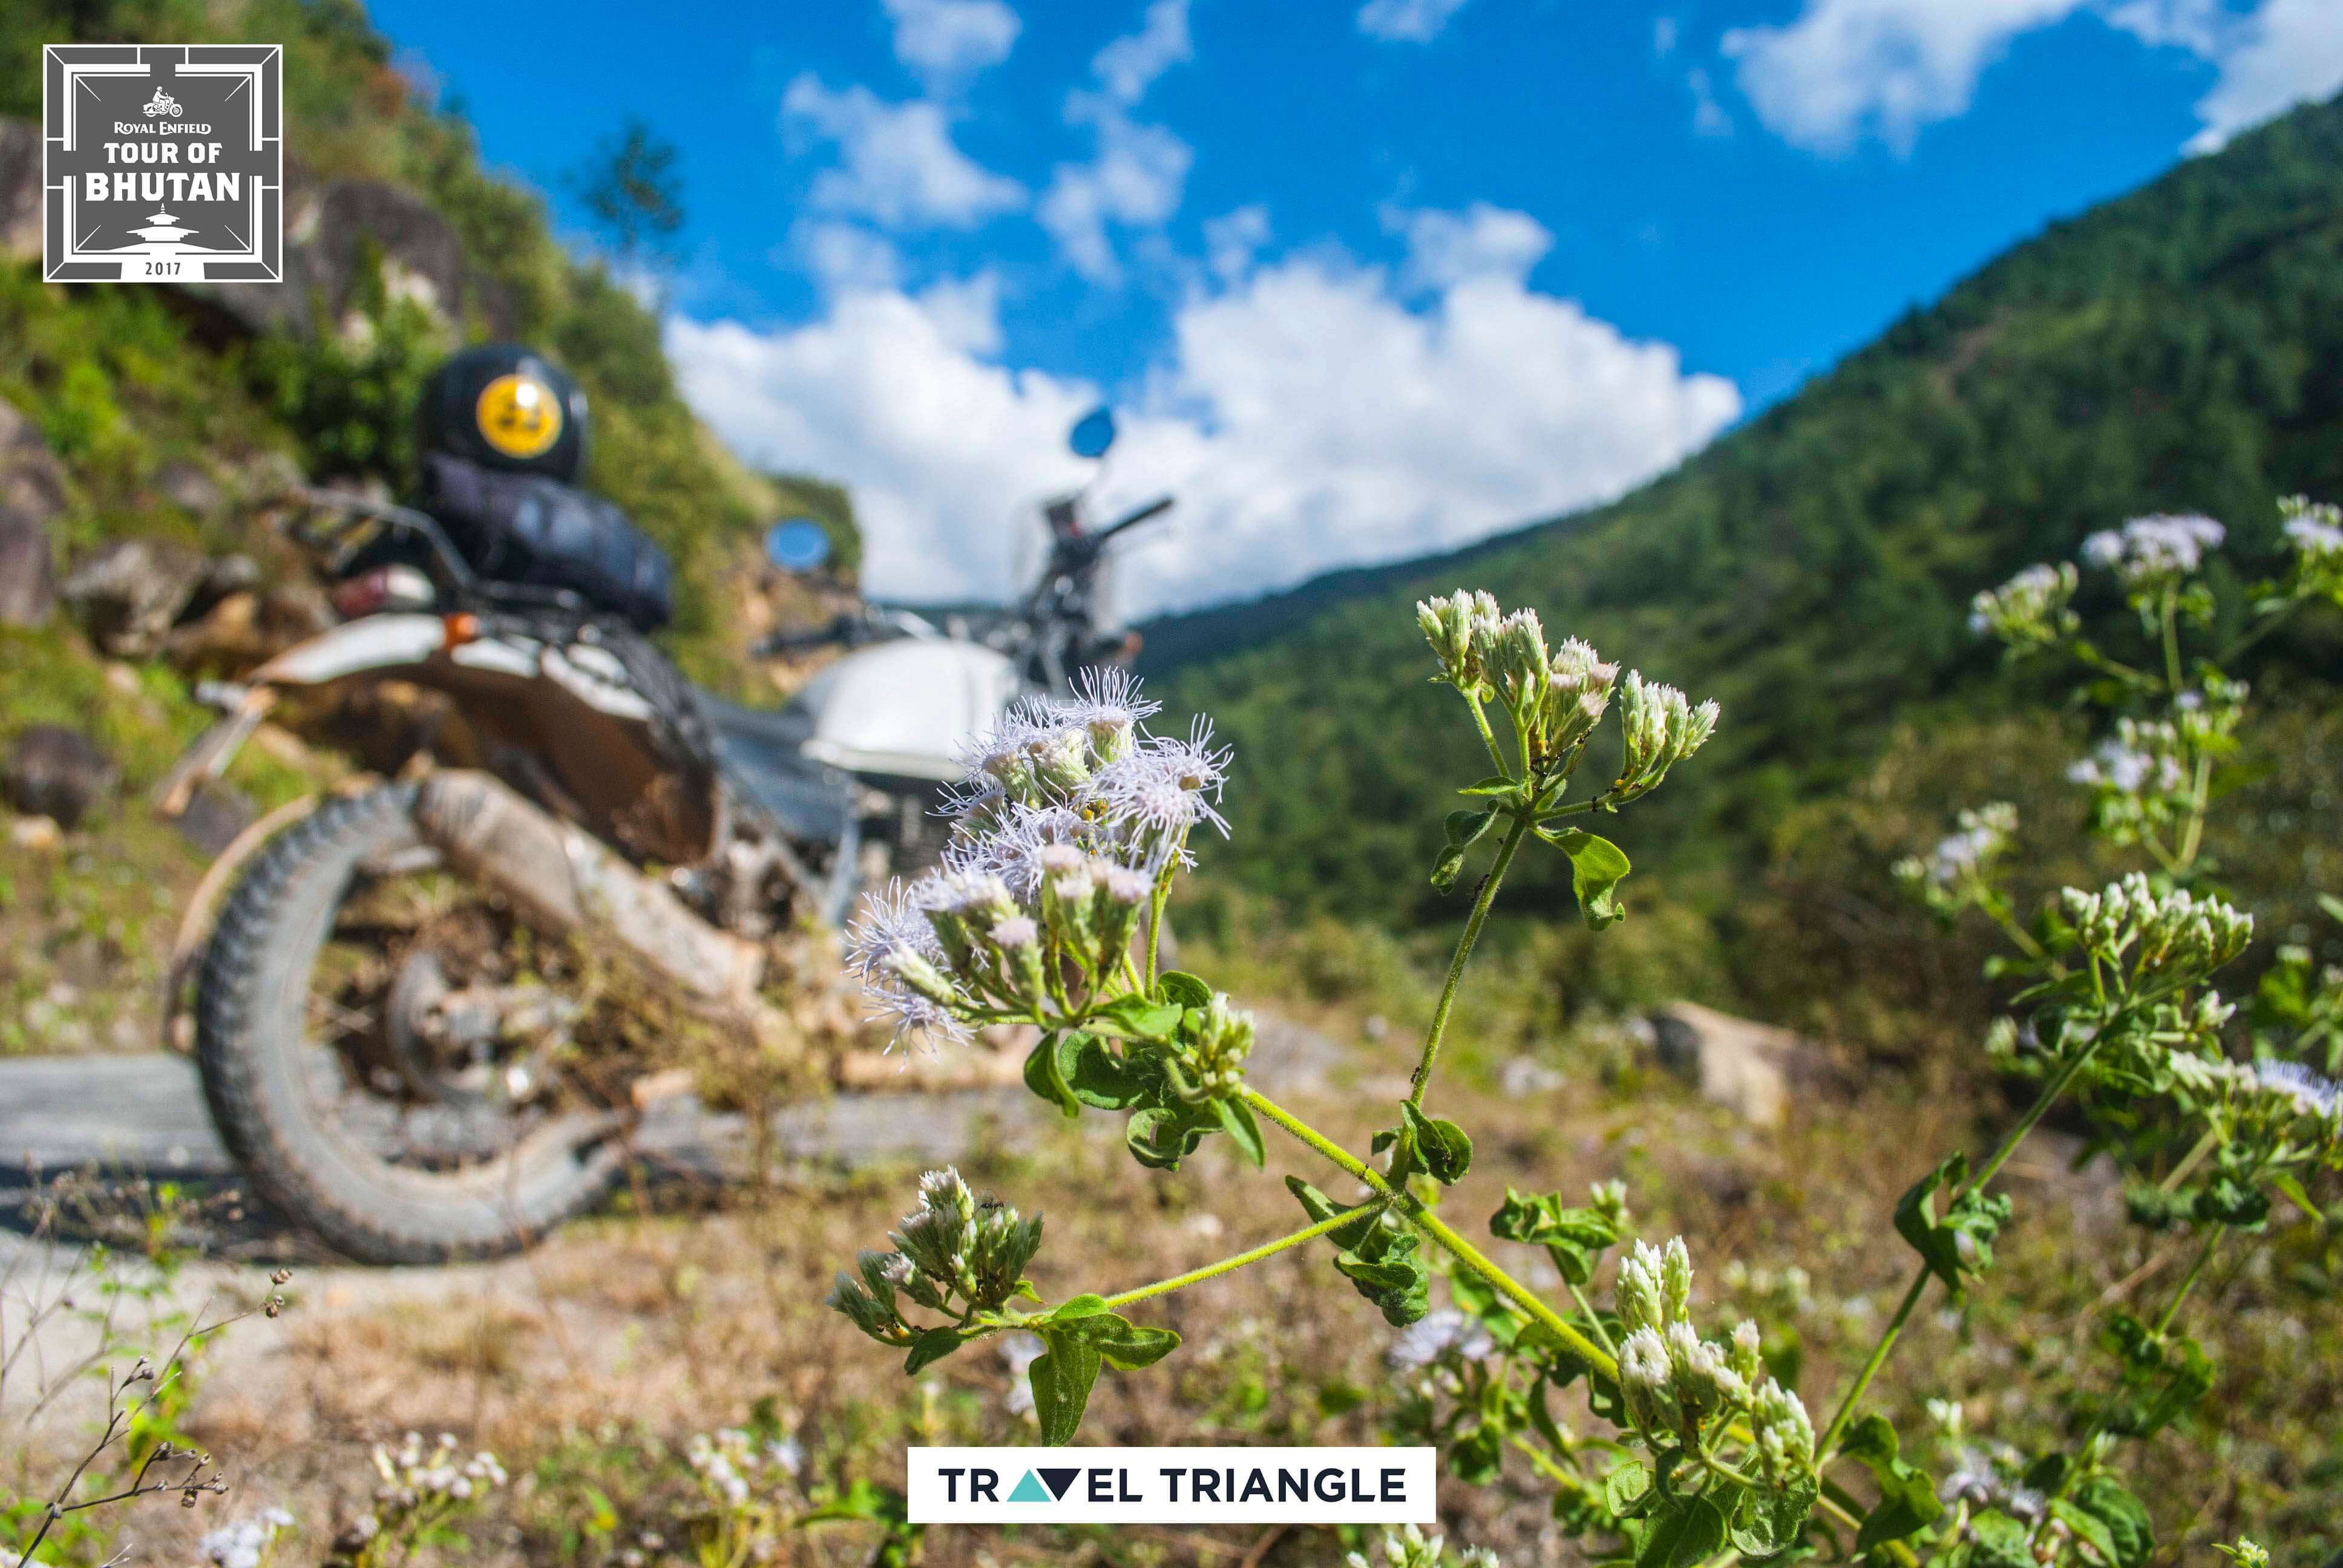 royal enfield india bhutan road trip: a bike amid flower fields